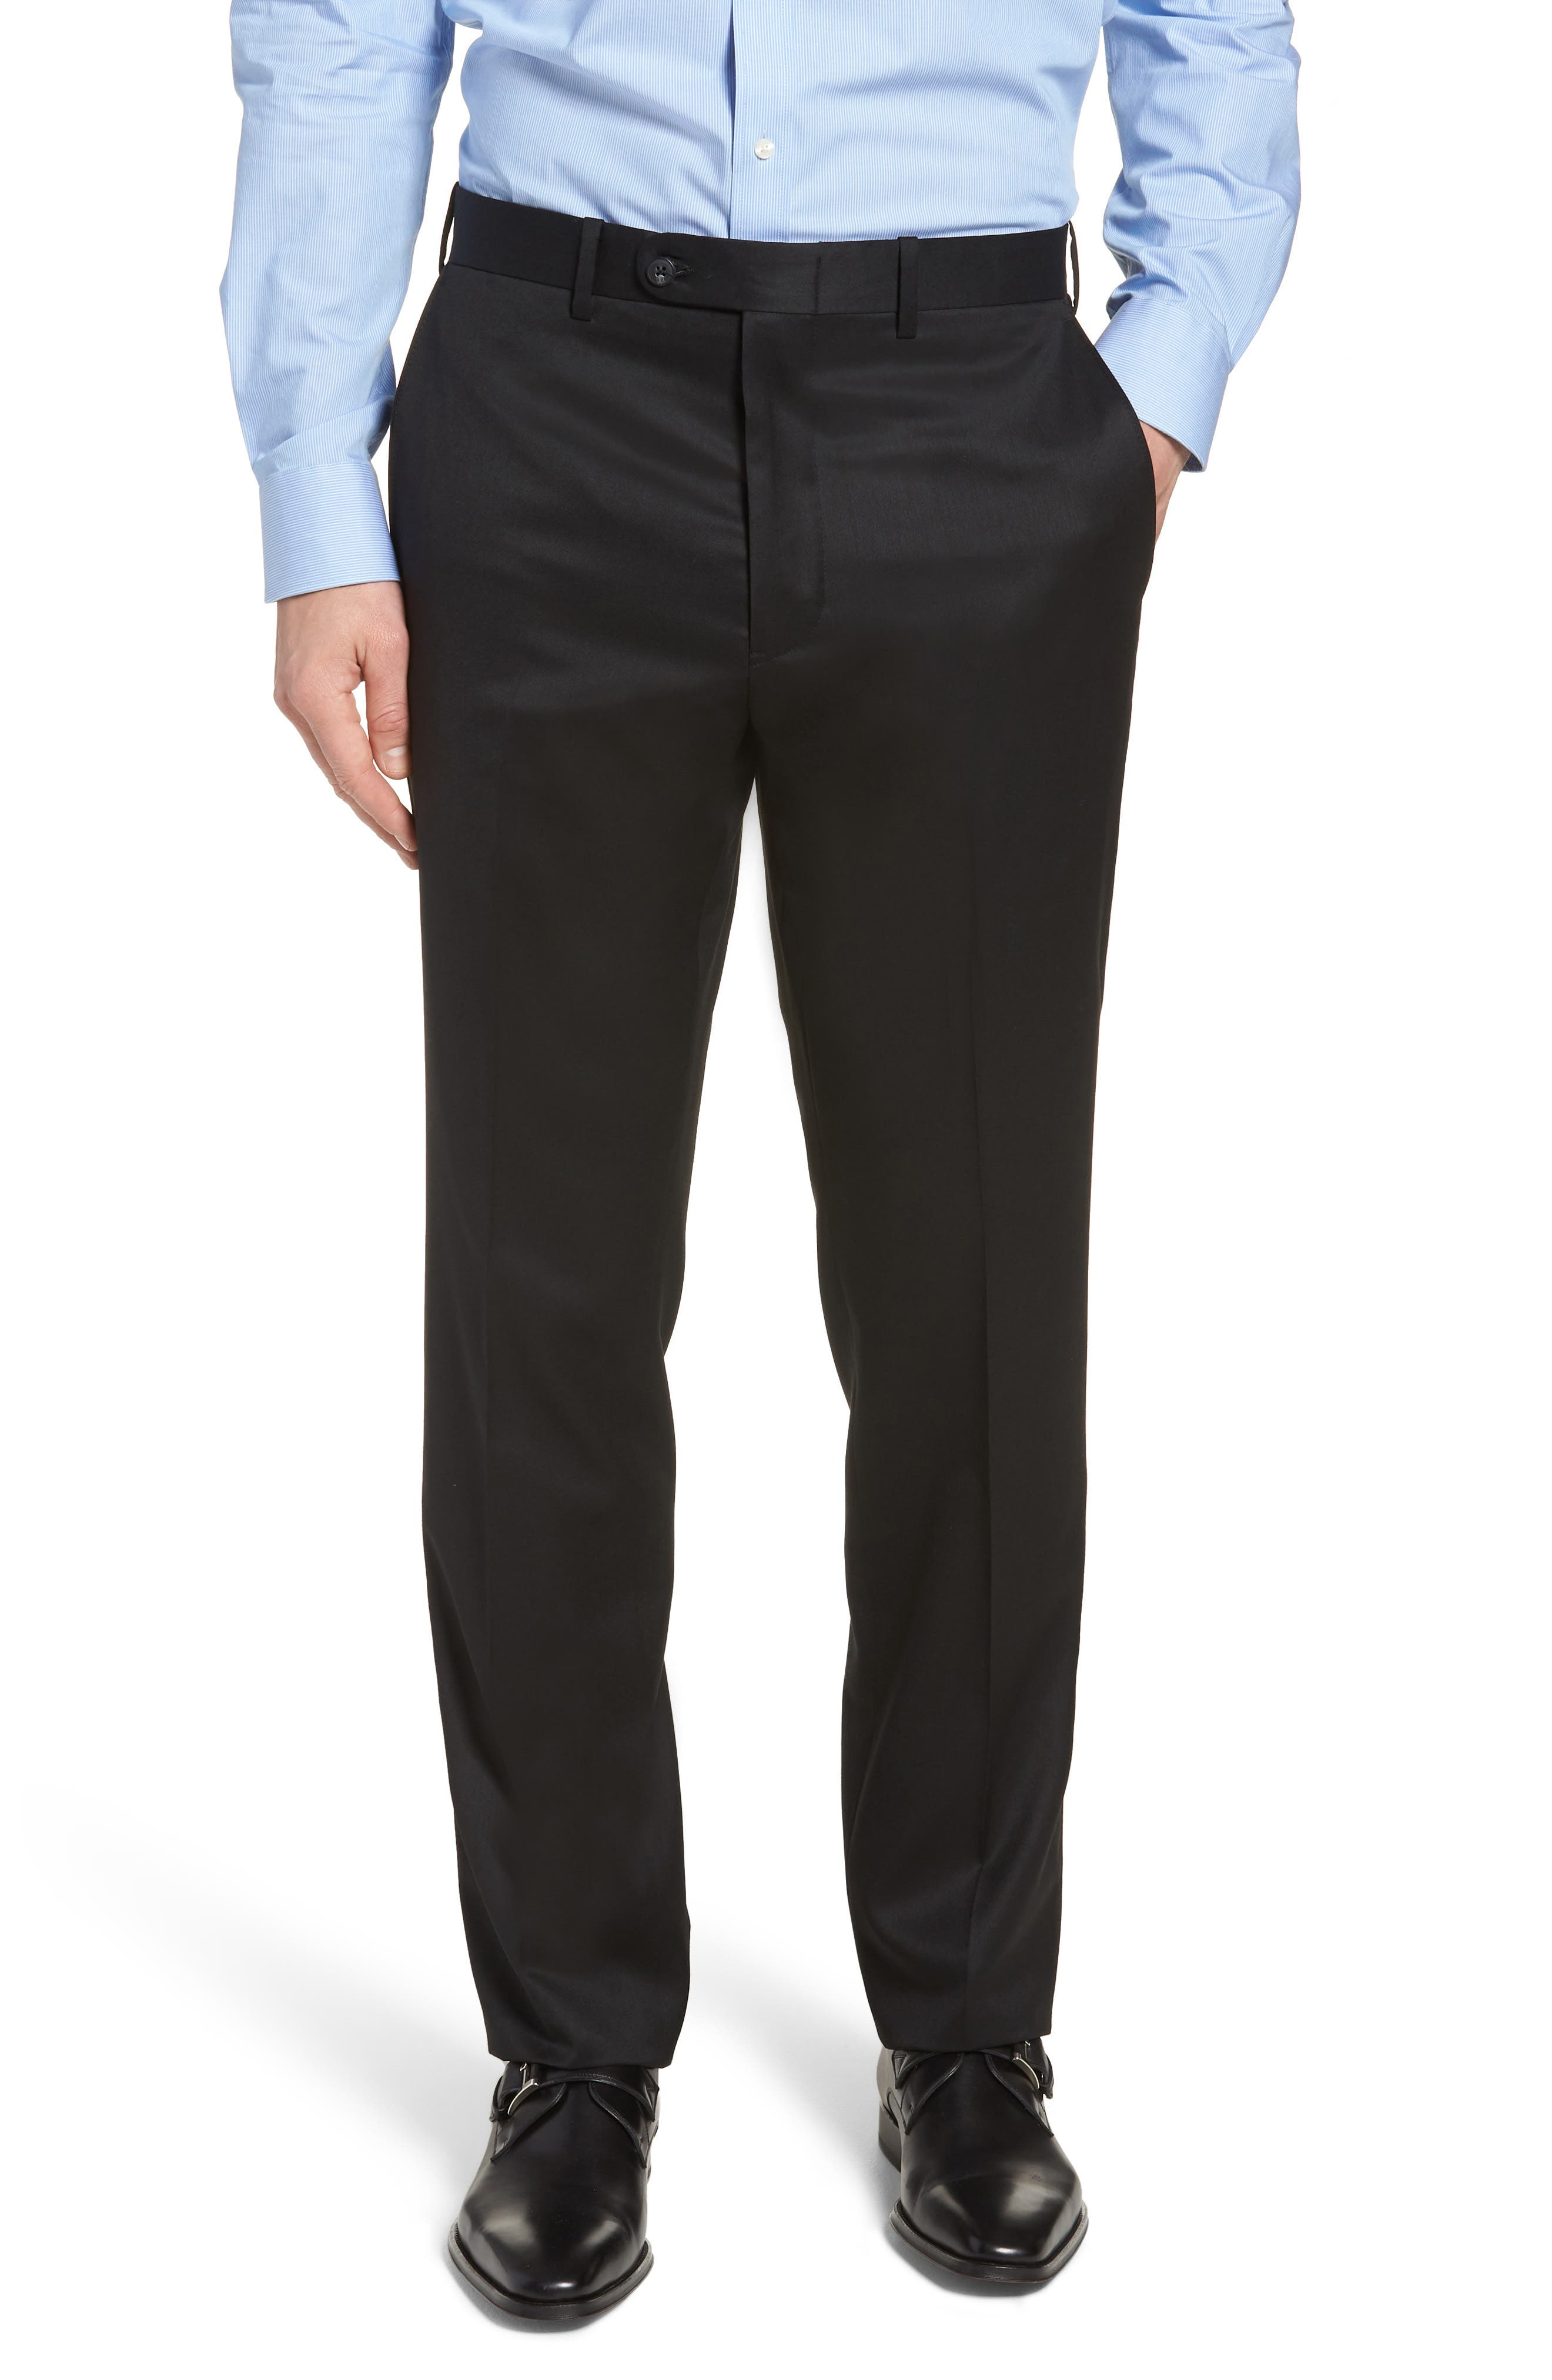 Torino Traditional Fit Flat Front Solid Trousers,                         Main,                         color, BLACK